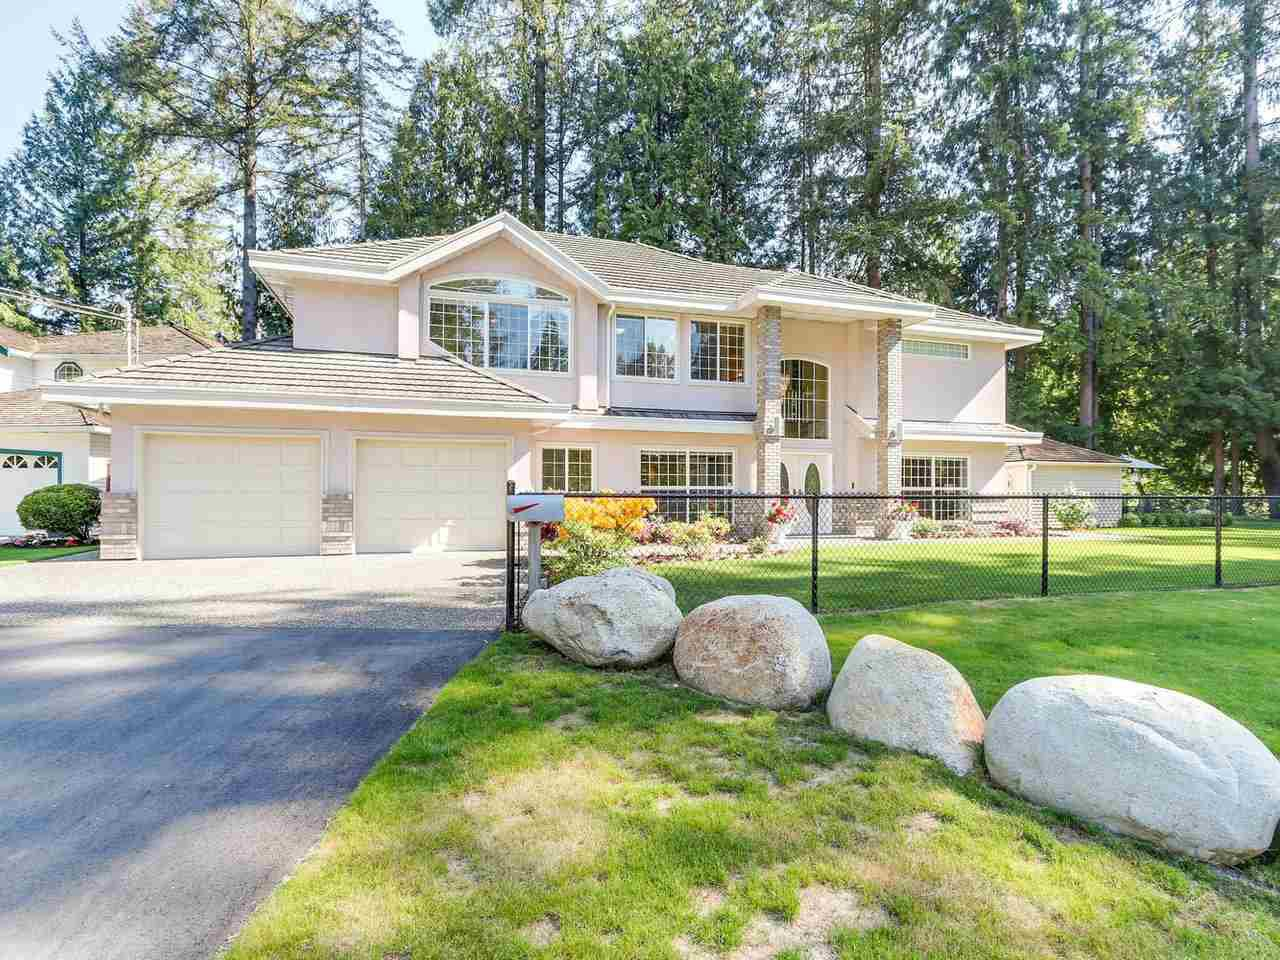 Main Photo: 23575 DOGWOOD Avenue in Maple Ridge: East Central House for sale : MLS®# R2195573